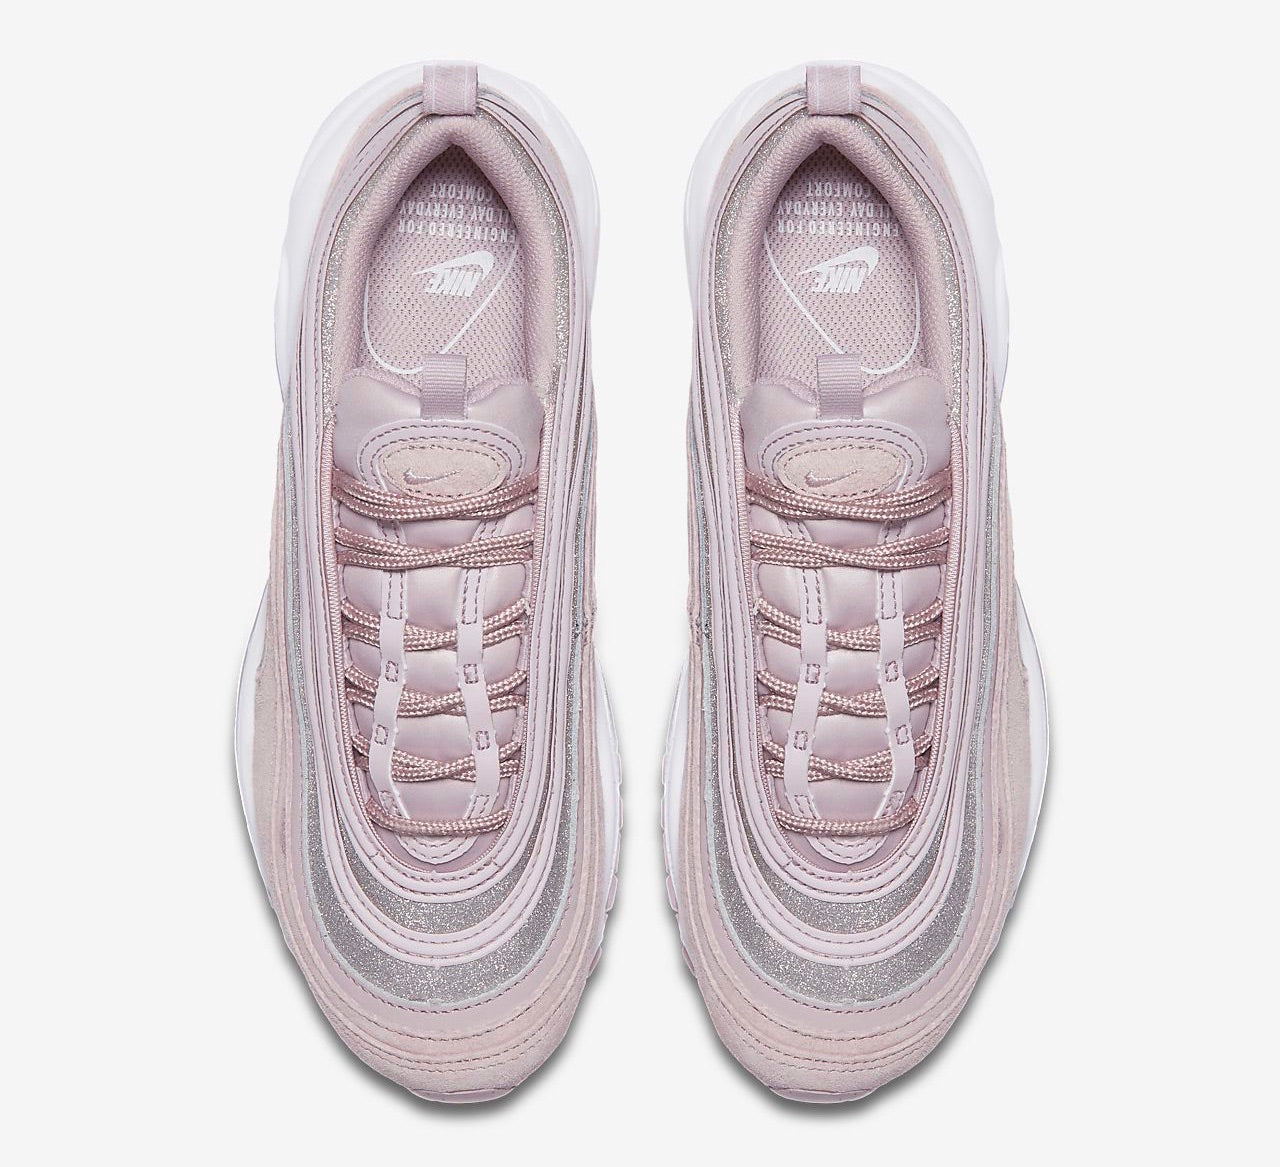 0d2f4d8bb0f9 Nike Air Rose Max 97 Glitter Particle Rose Air AT0071-600 Women's ... 84  Best Shoes images in 2019   Beautiful shoes, Shoe boots, Loafers ... good nike  air ...